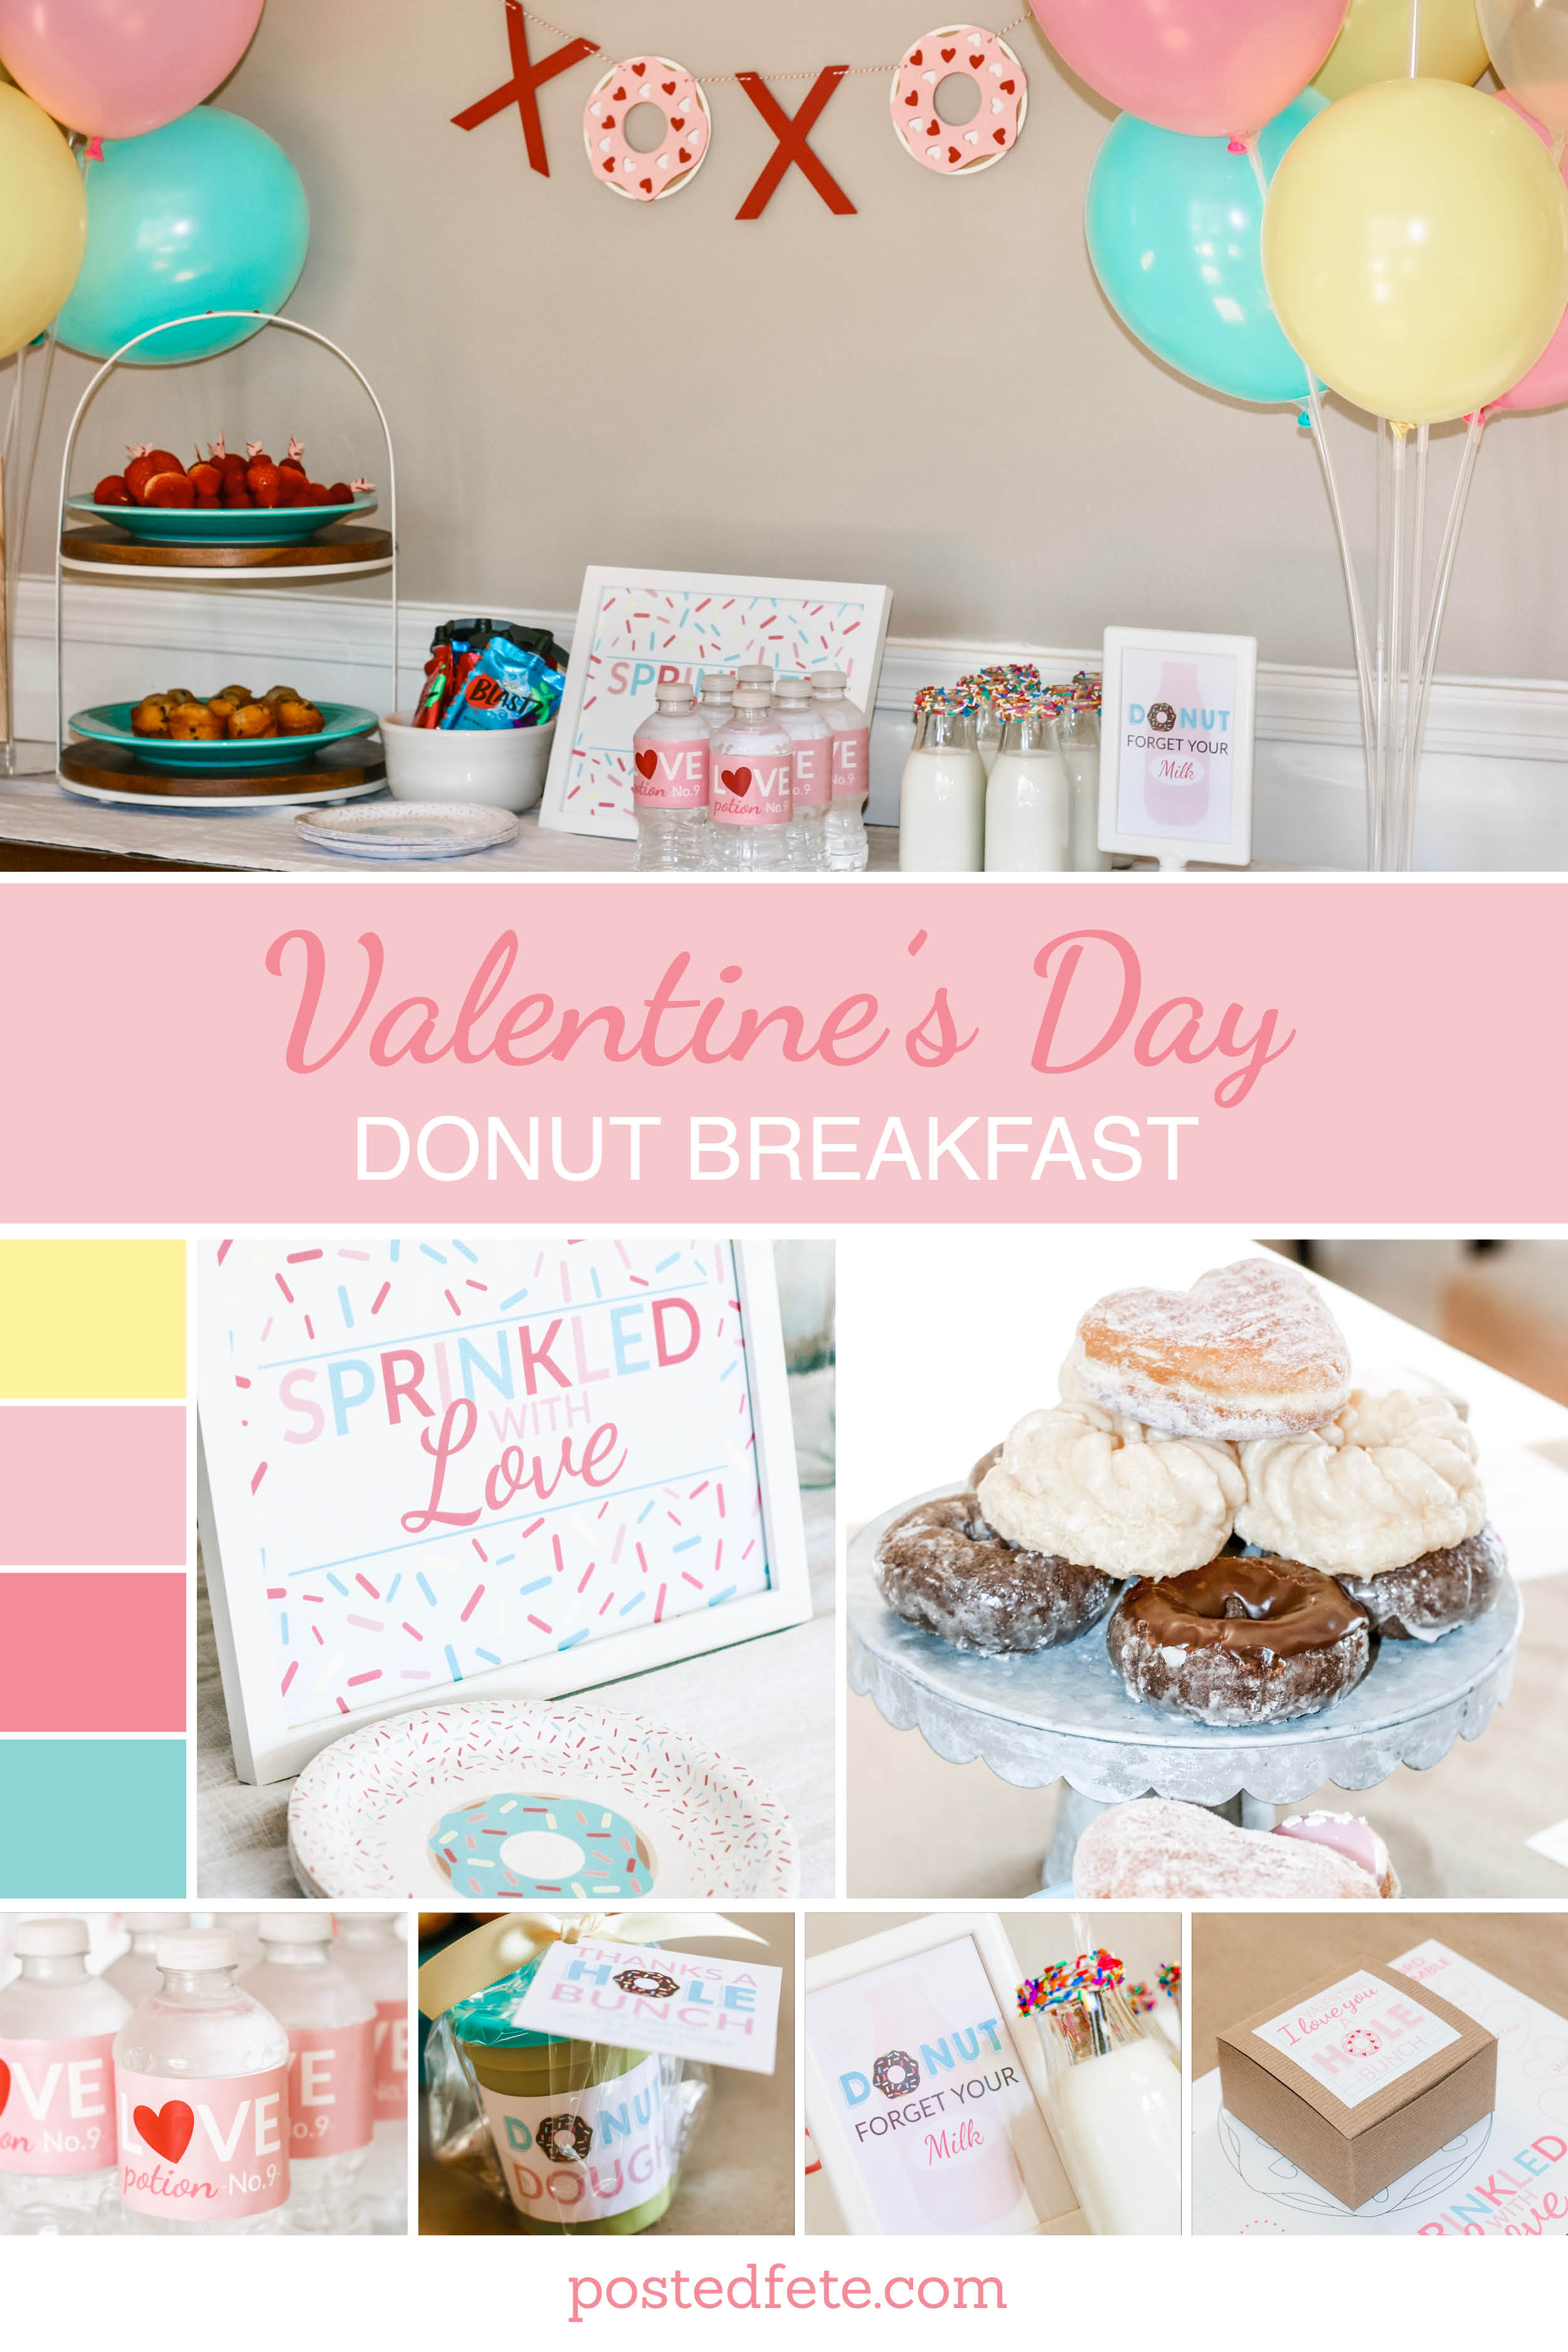 Sprinkled with Love Valentine's Day Donut Breakfast for Kids. Valentine's Day Birthday Party or Playdate with Friends | by Posted Fete